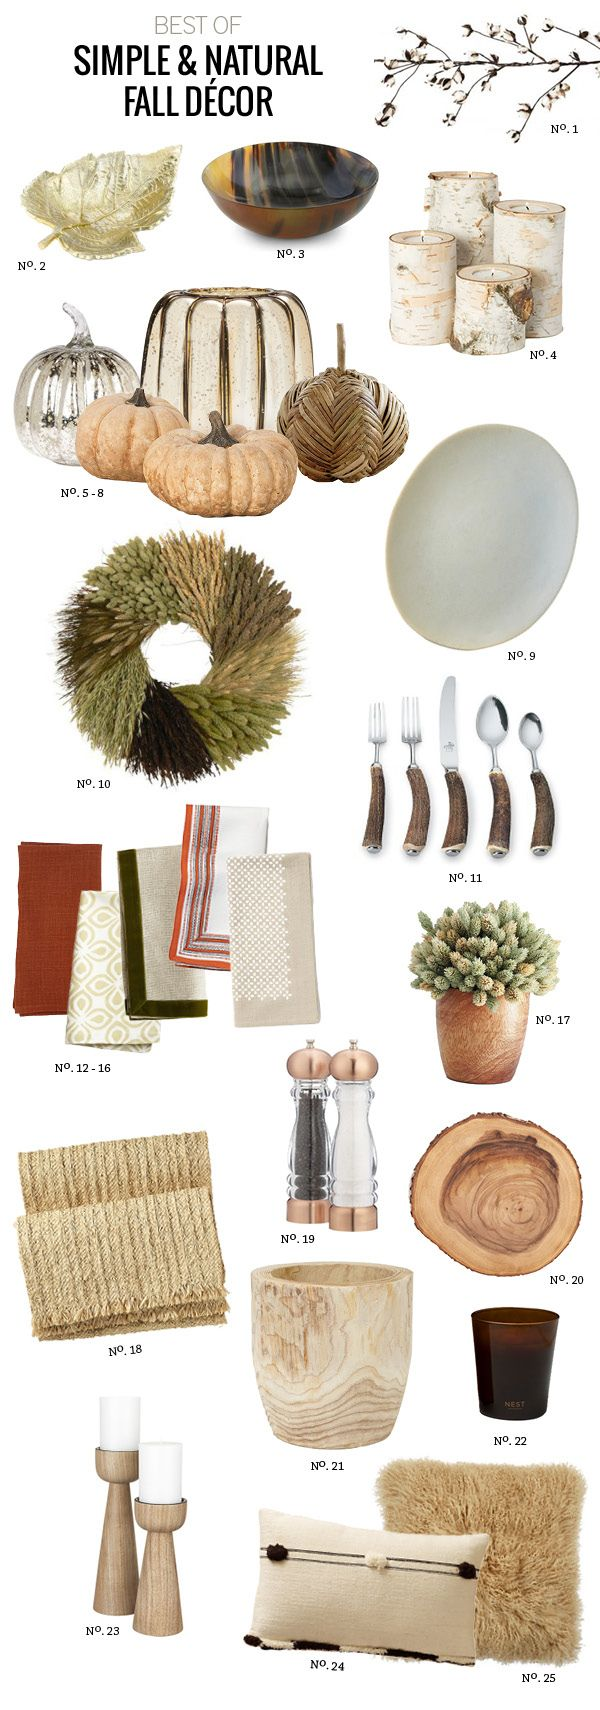 Best Of: Simple & Natural Fall Décor by Modern Eve @Laura Simms - this makes me think of you